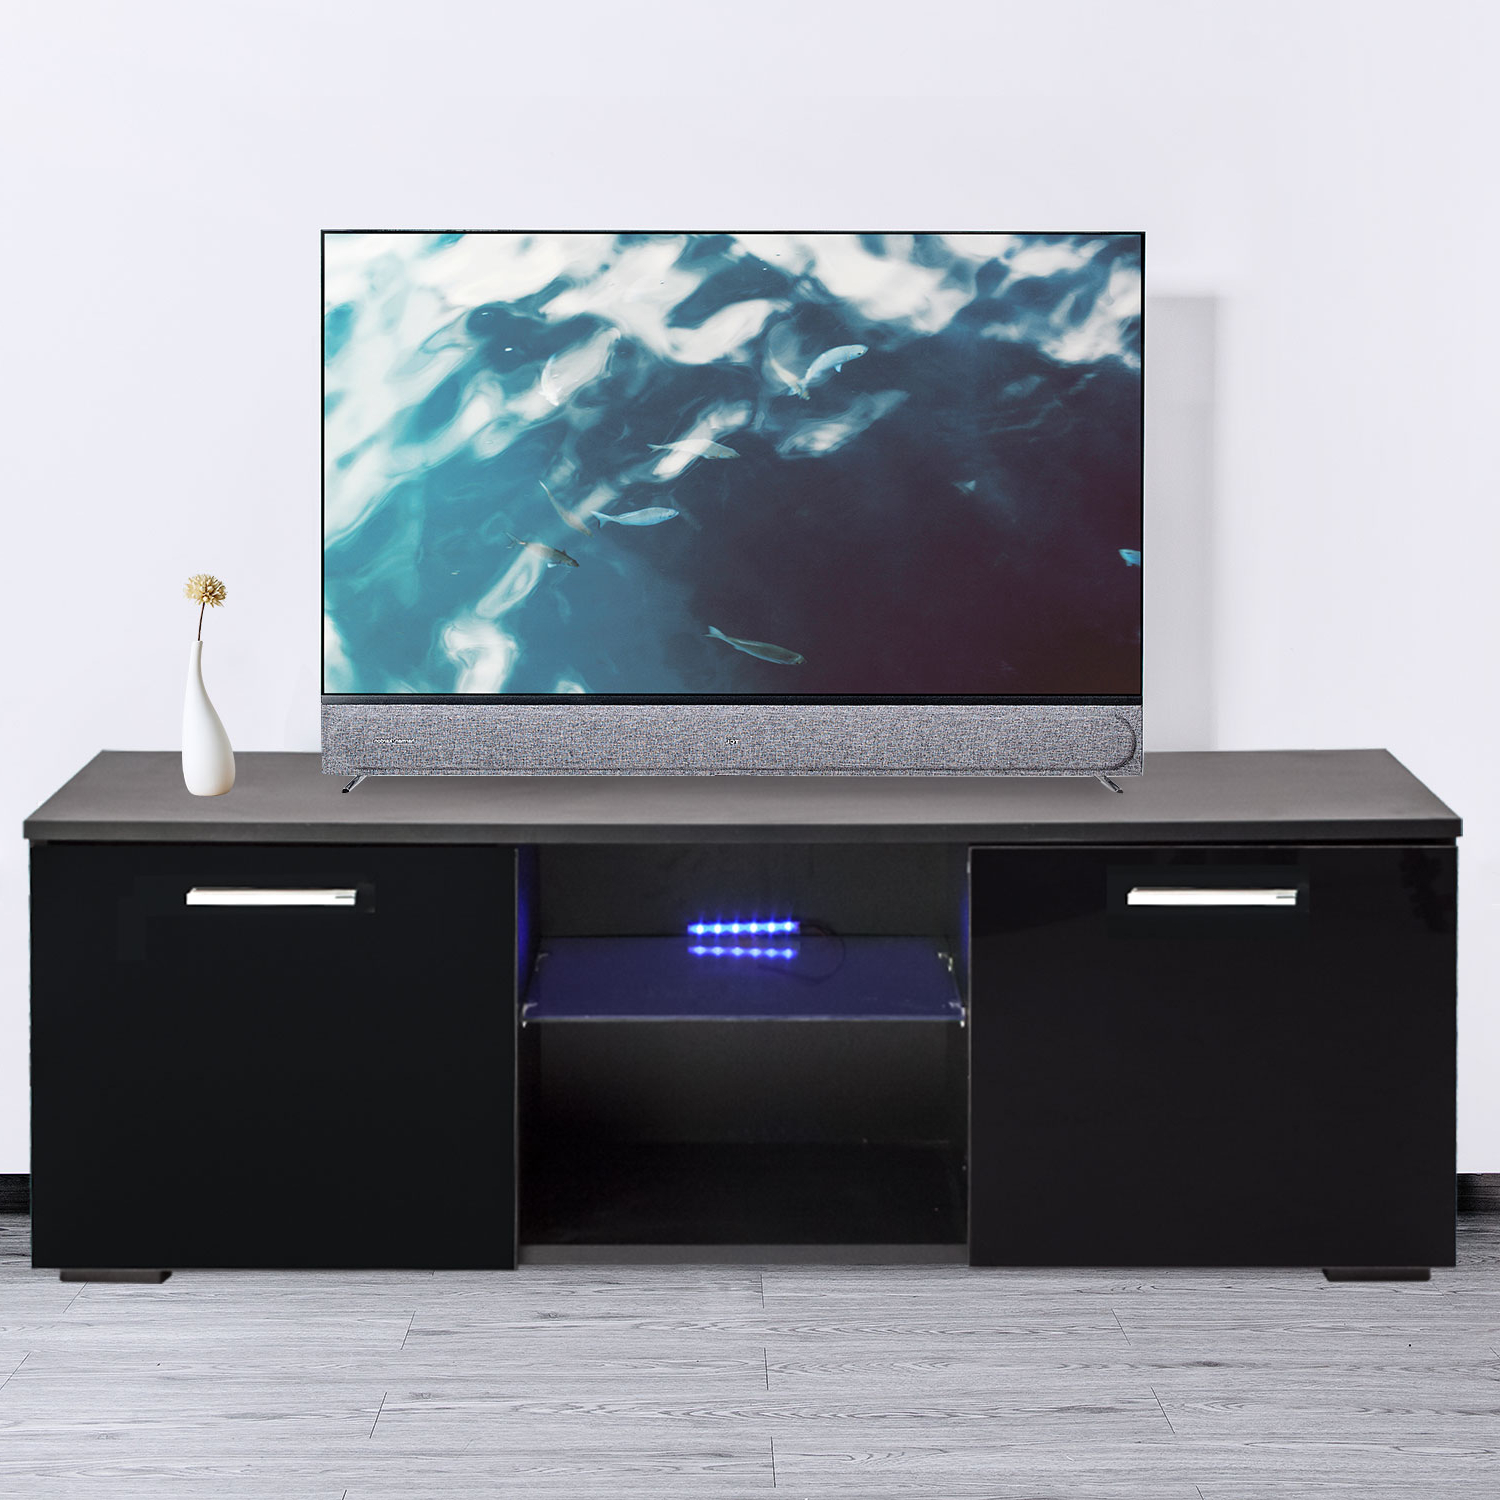 120cm Tv Cabinet Stand Unit Modern Led Light High Gloss 2 Throughout Ktaxon Modern High Gloss Tv Stands With Led Drawer And Shelves (View 12 of 20)